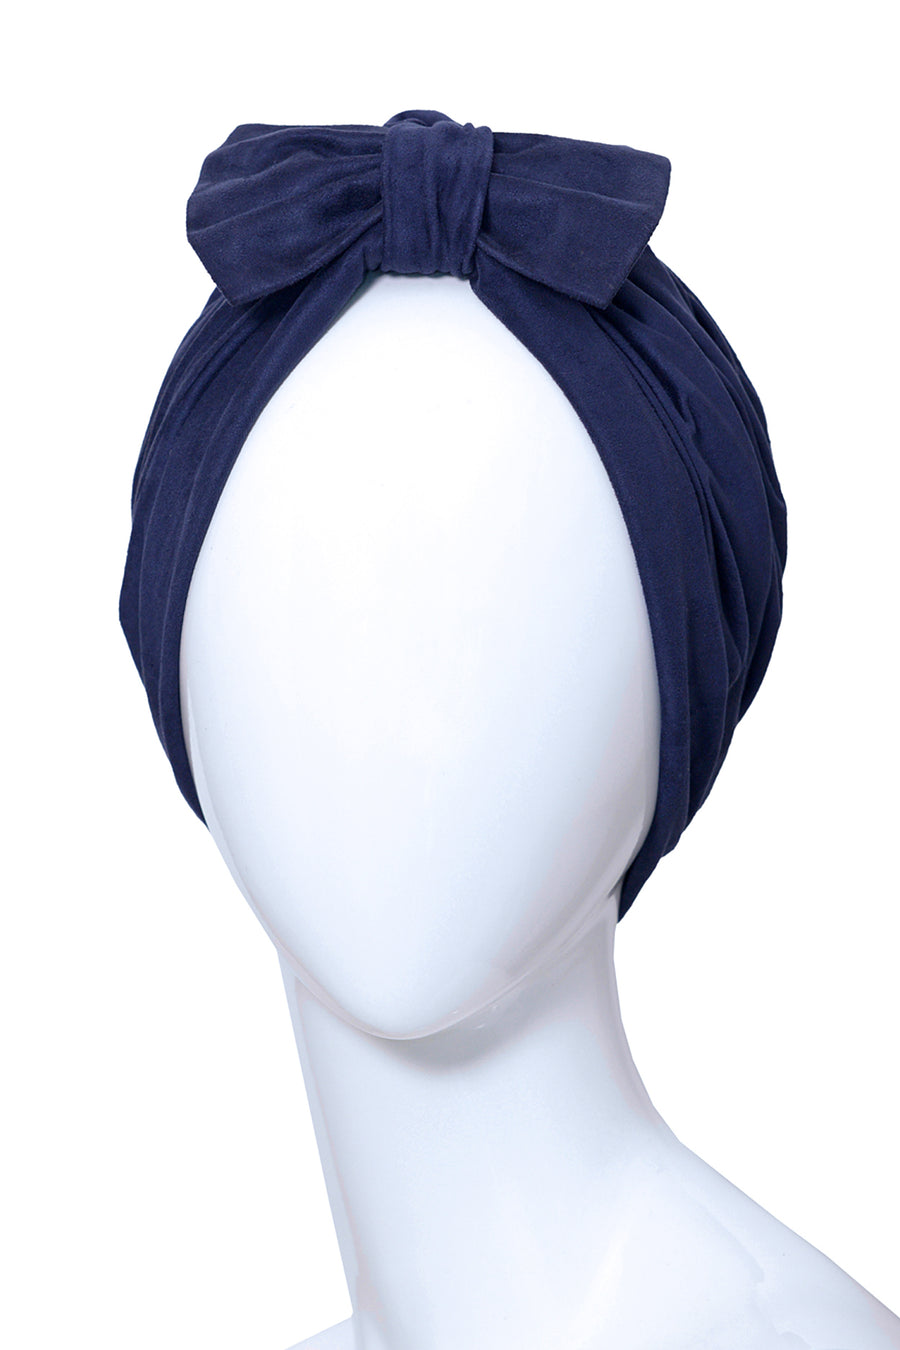 DANUBE Dark Blue Turban